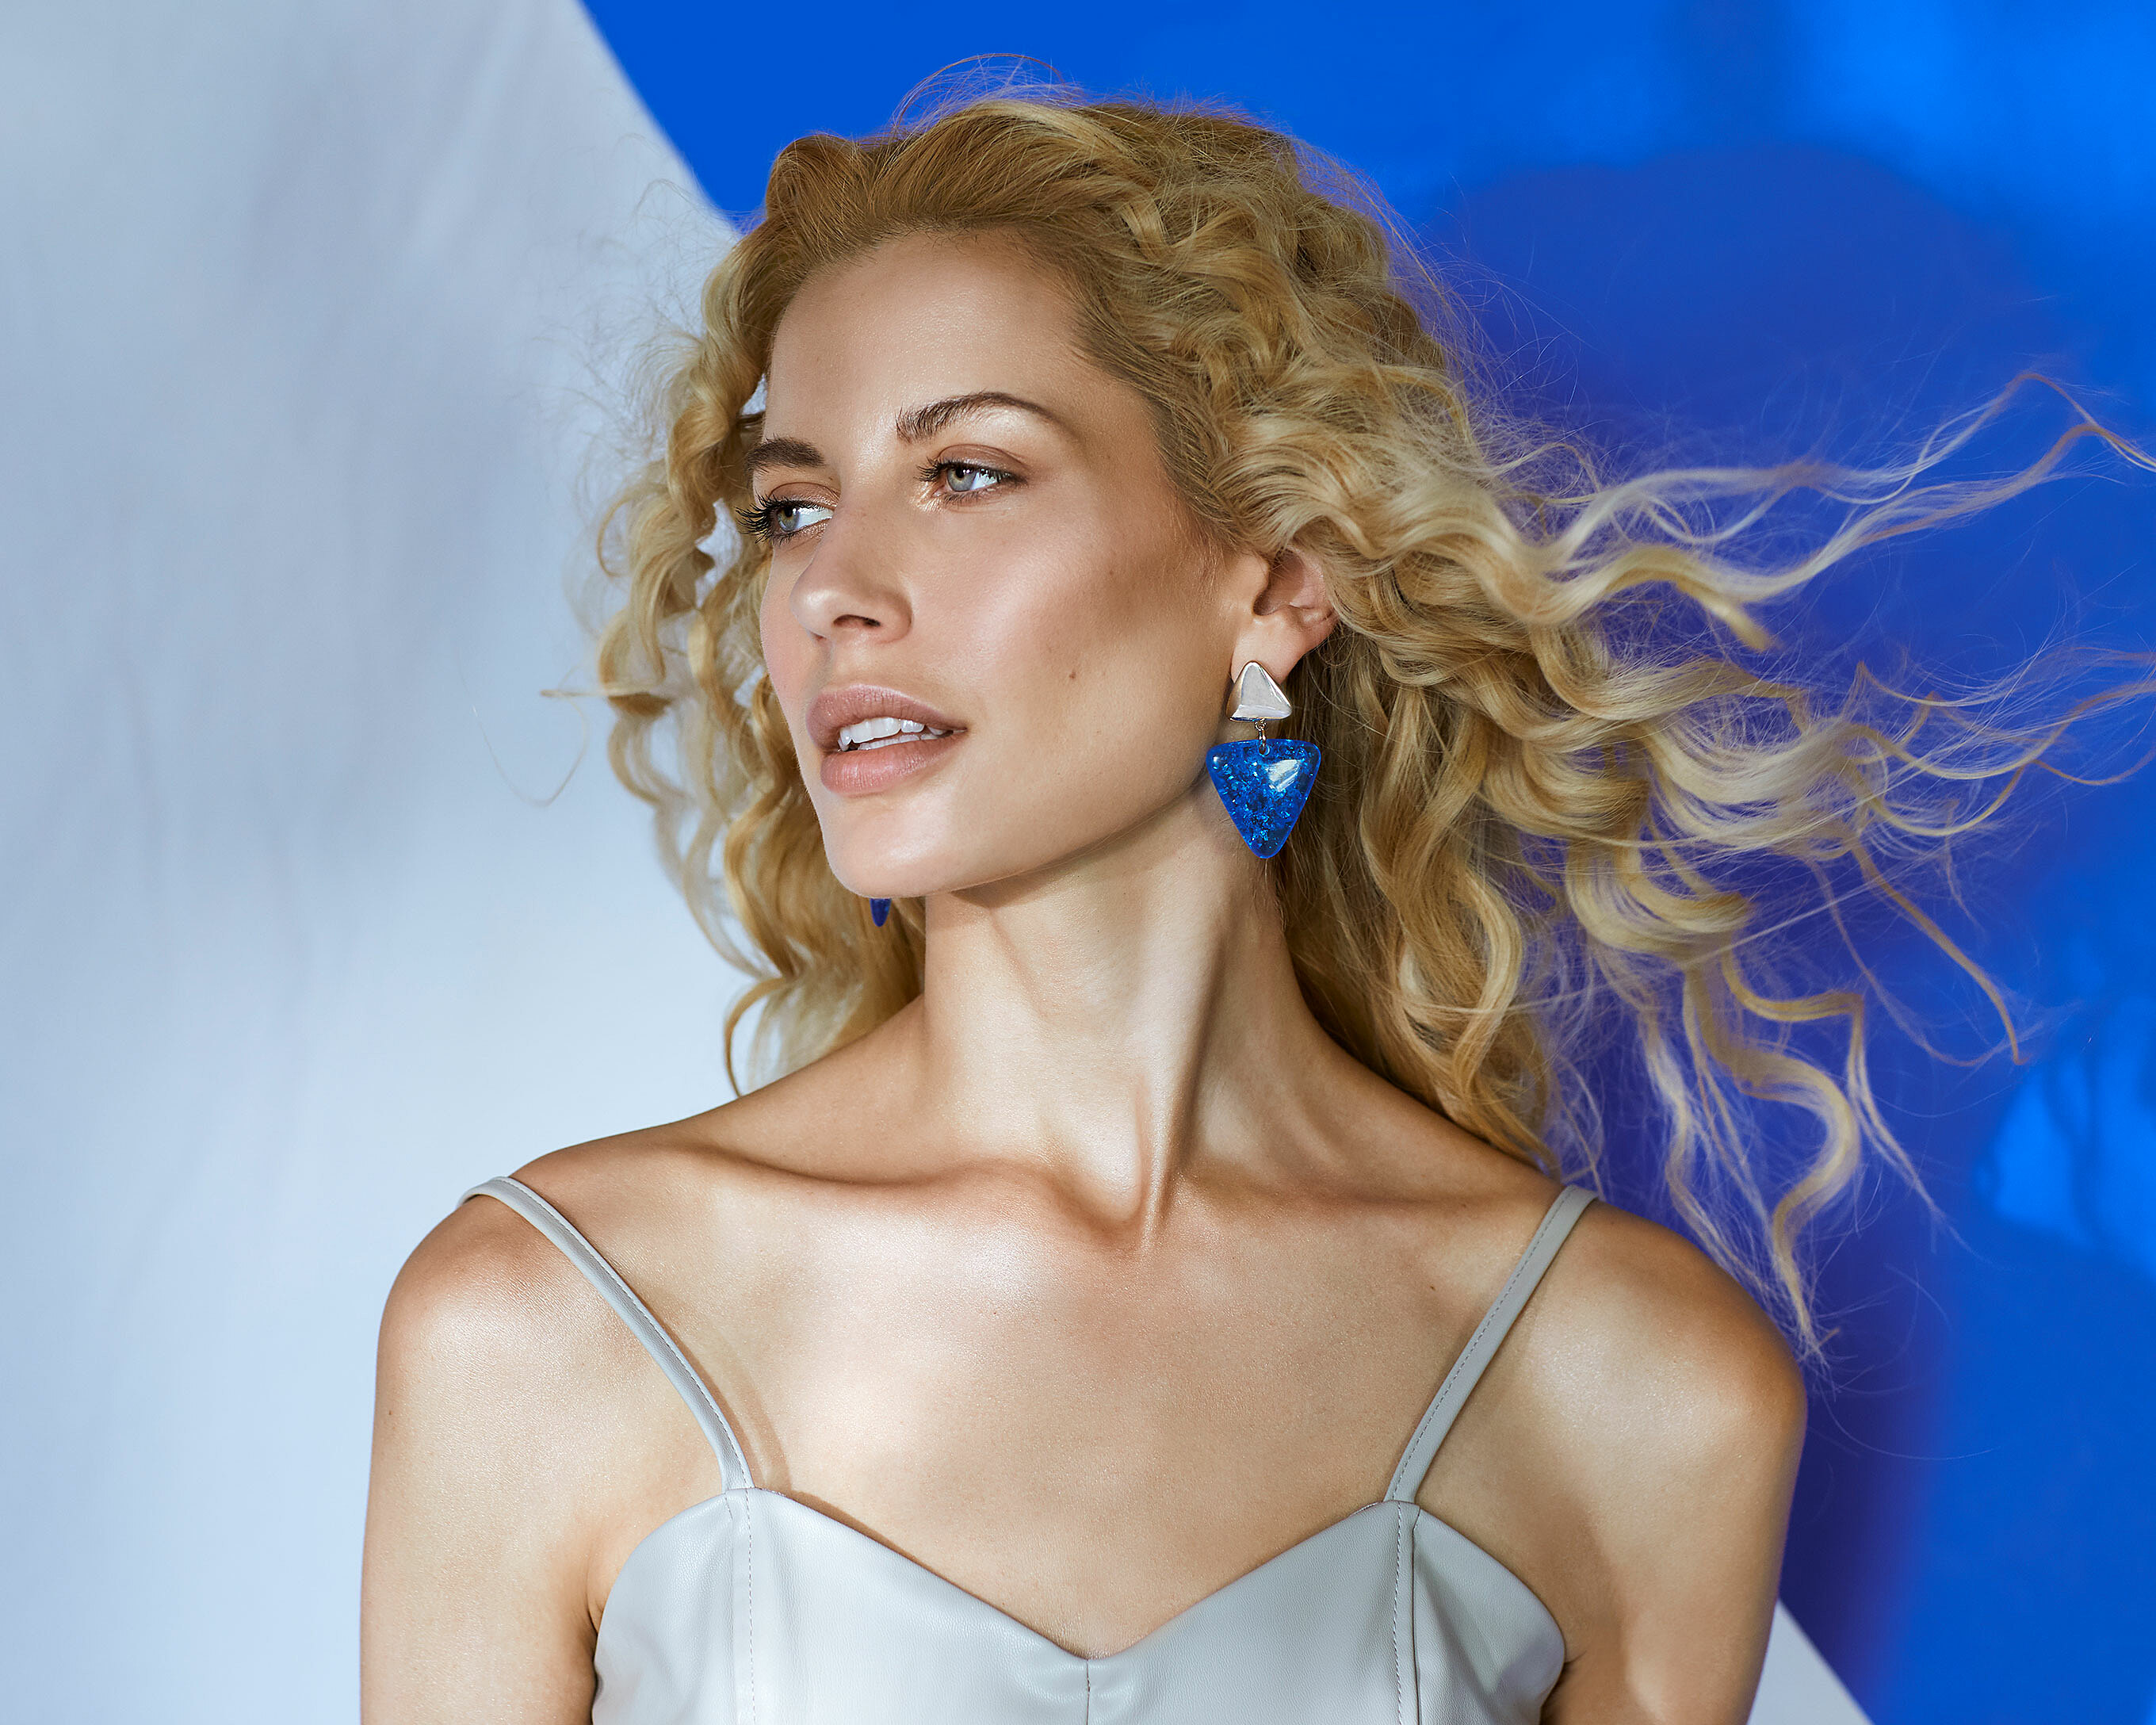 A female model with blonde curly hair stands in front of a white/blue wall. She wears blue earrings and get some wind from the side.